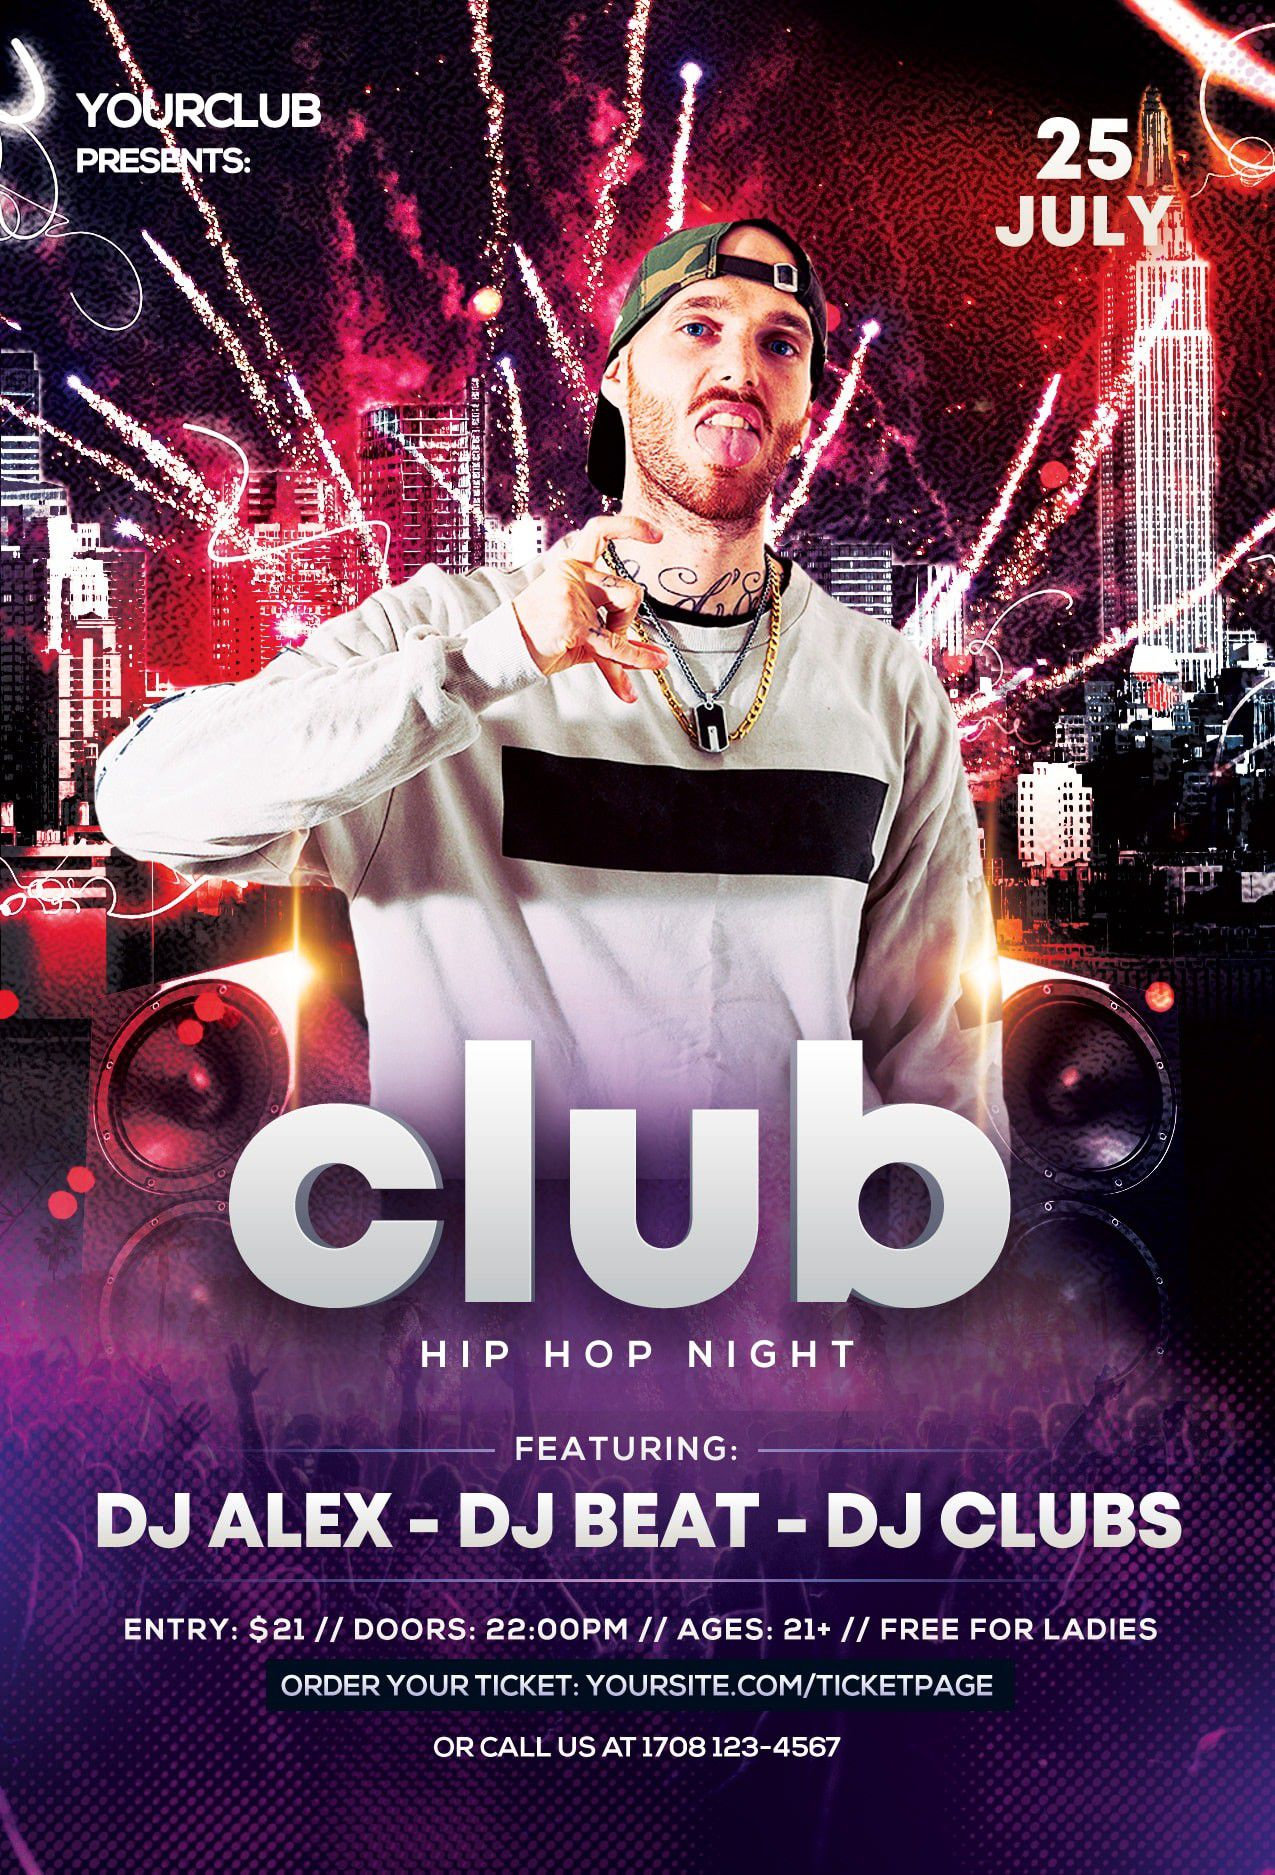 001 Marvelou Hip Hop Flyer Template Highest Clarity  Templates Hip-hop Party Free DownloadFull